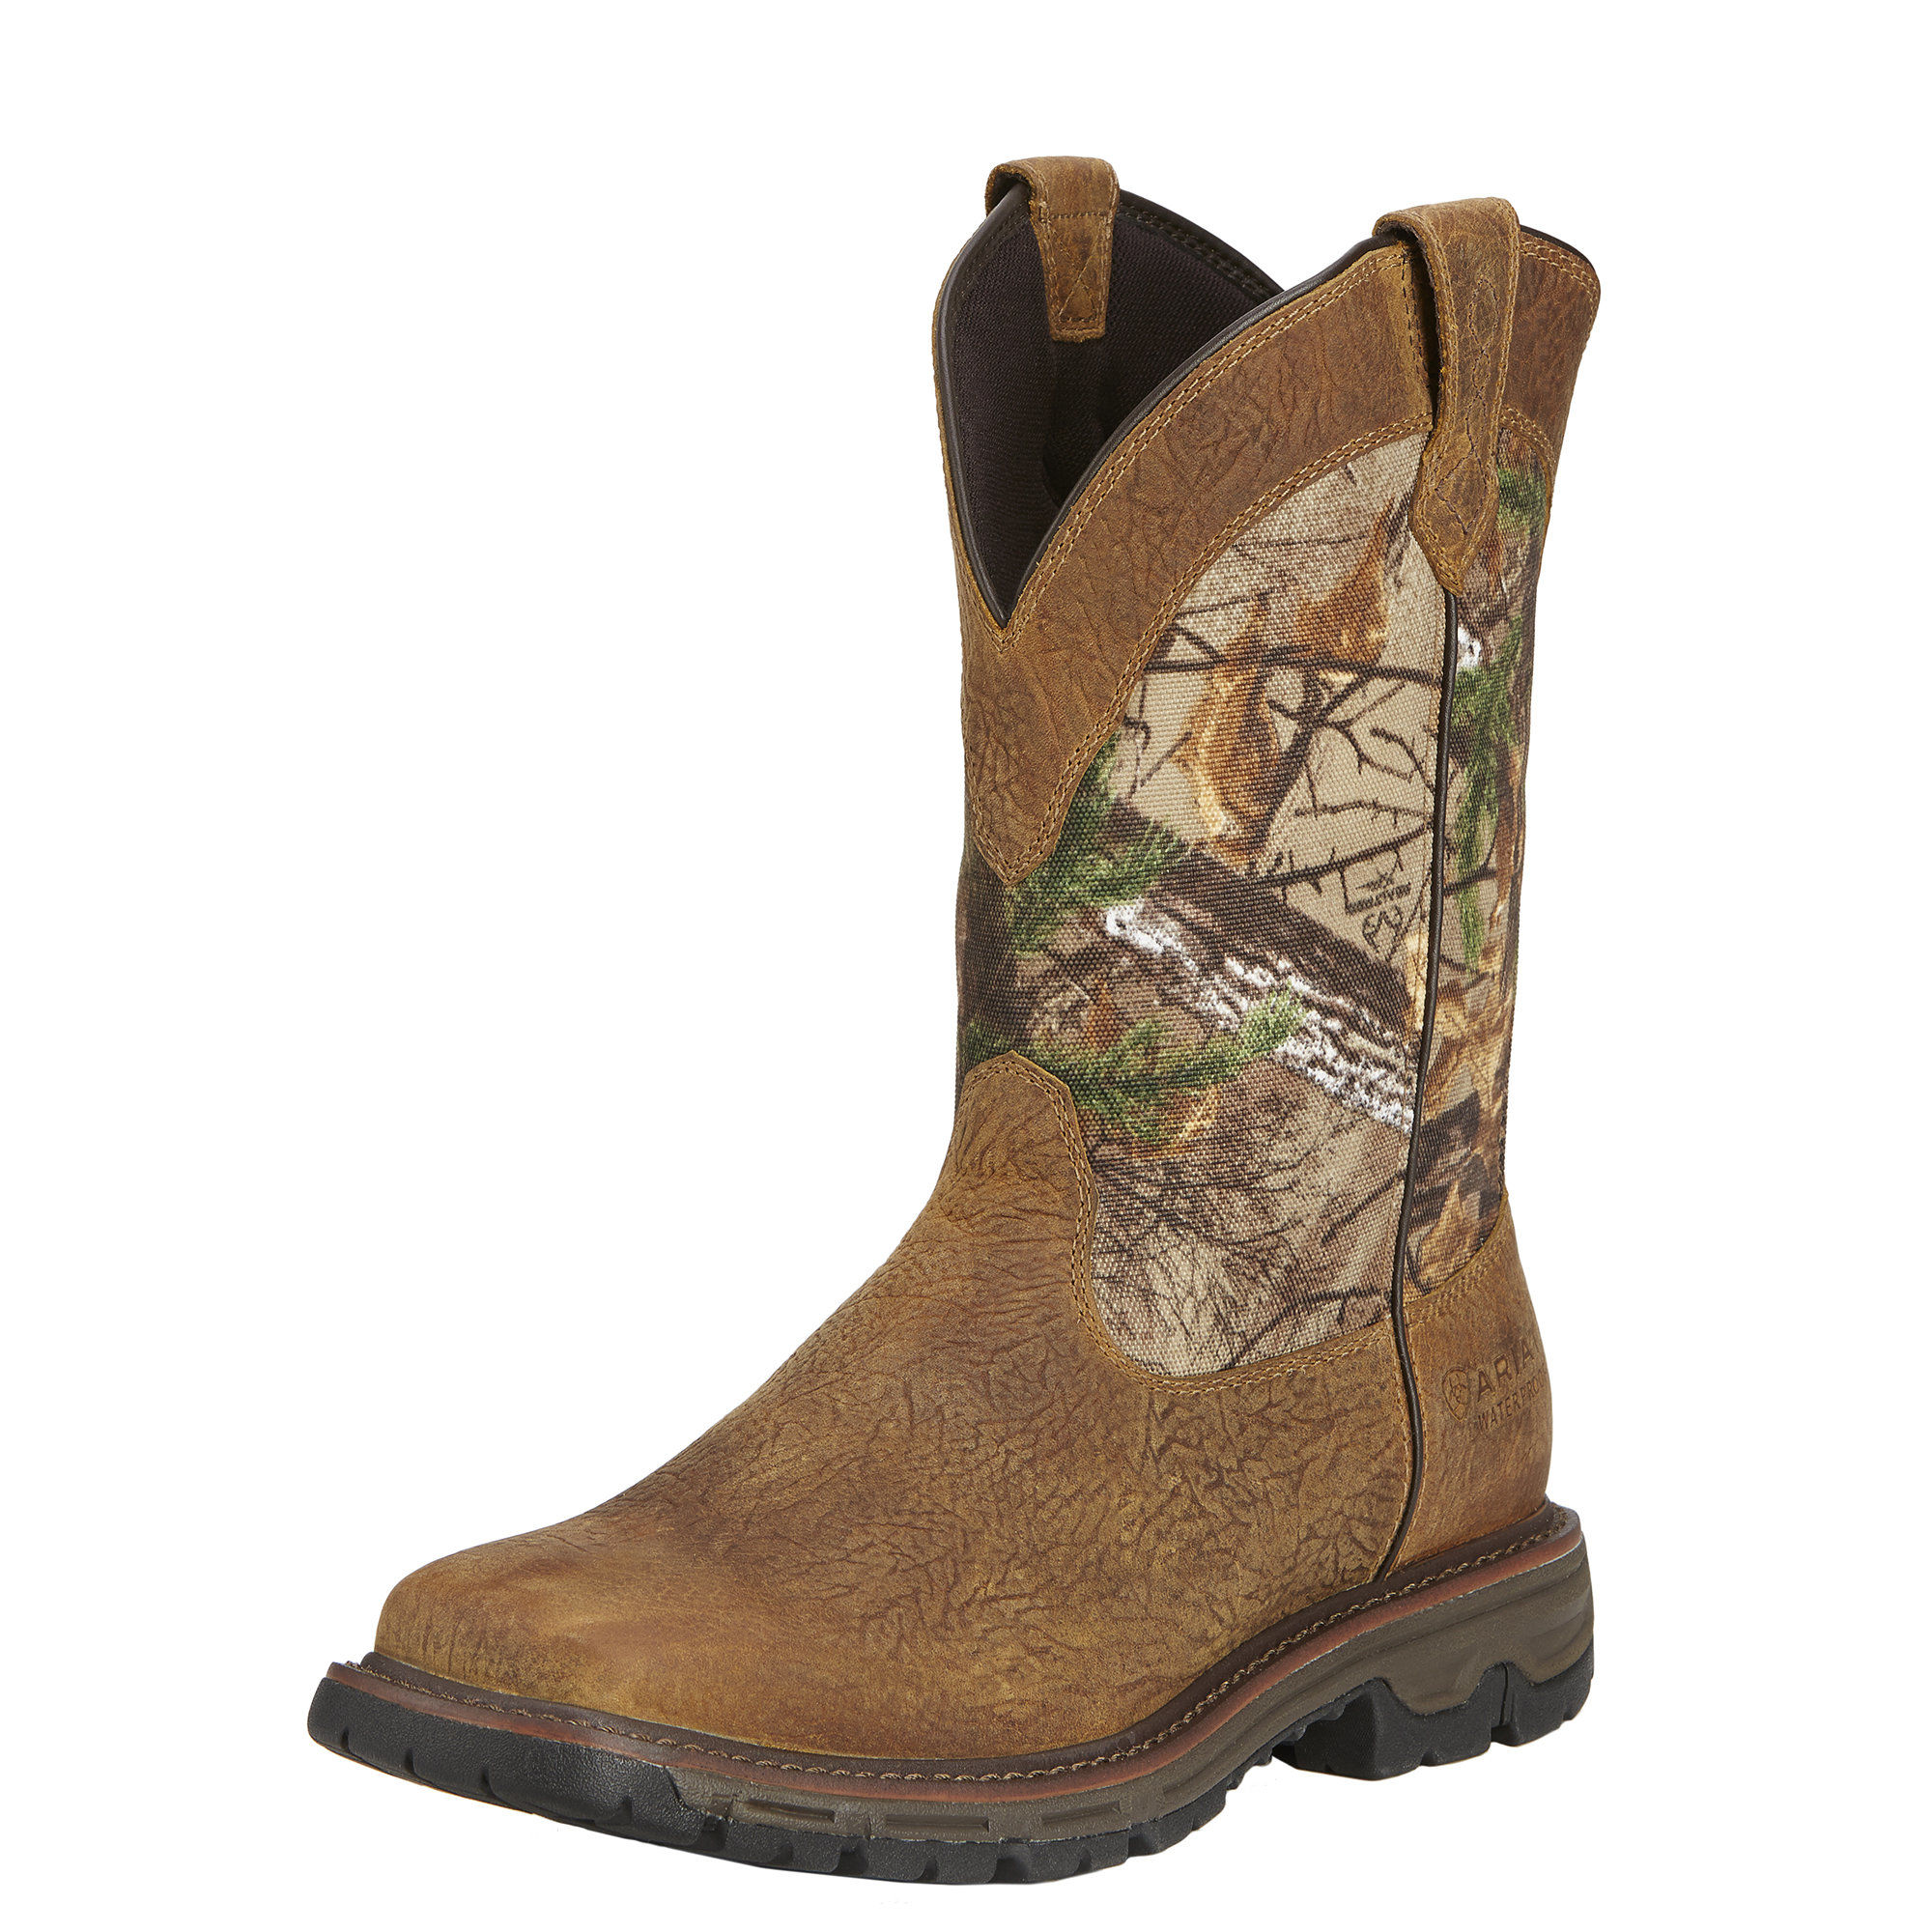 Get the stunning and safe   hunting boots